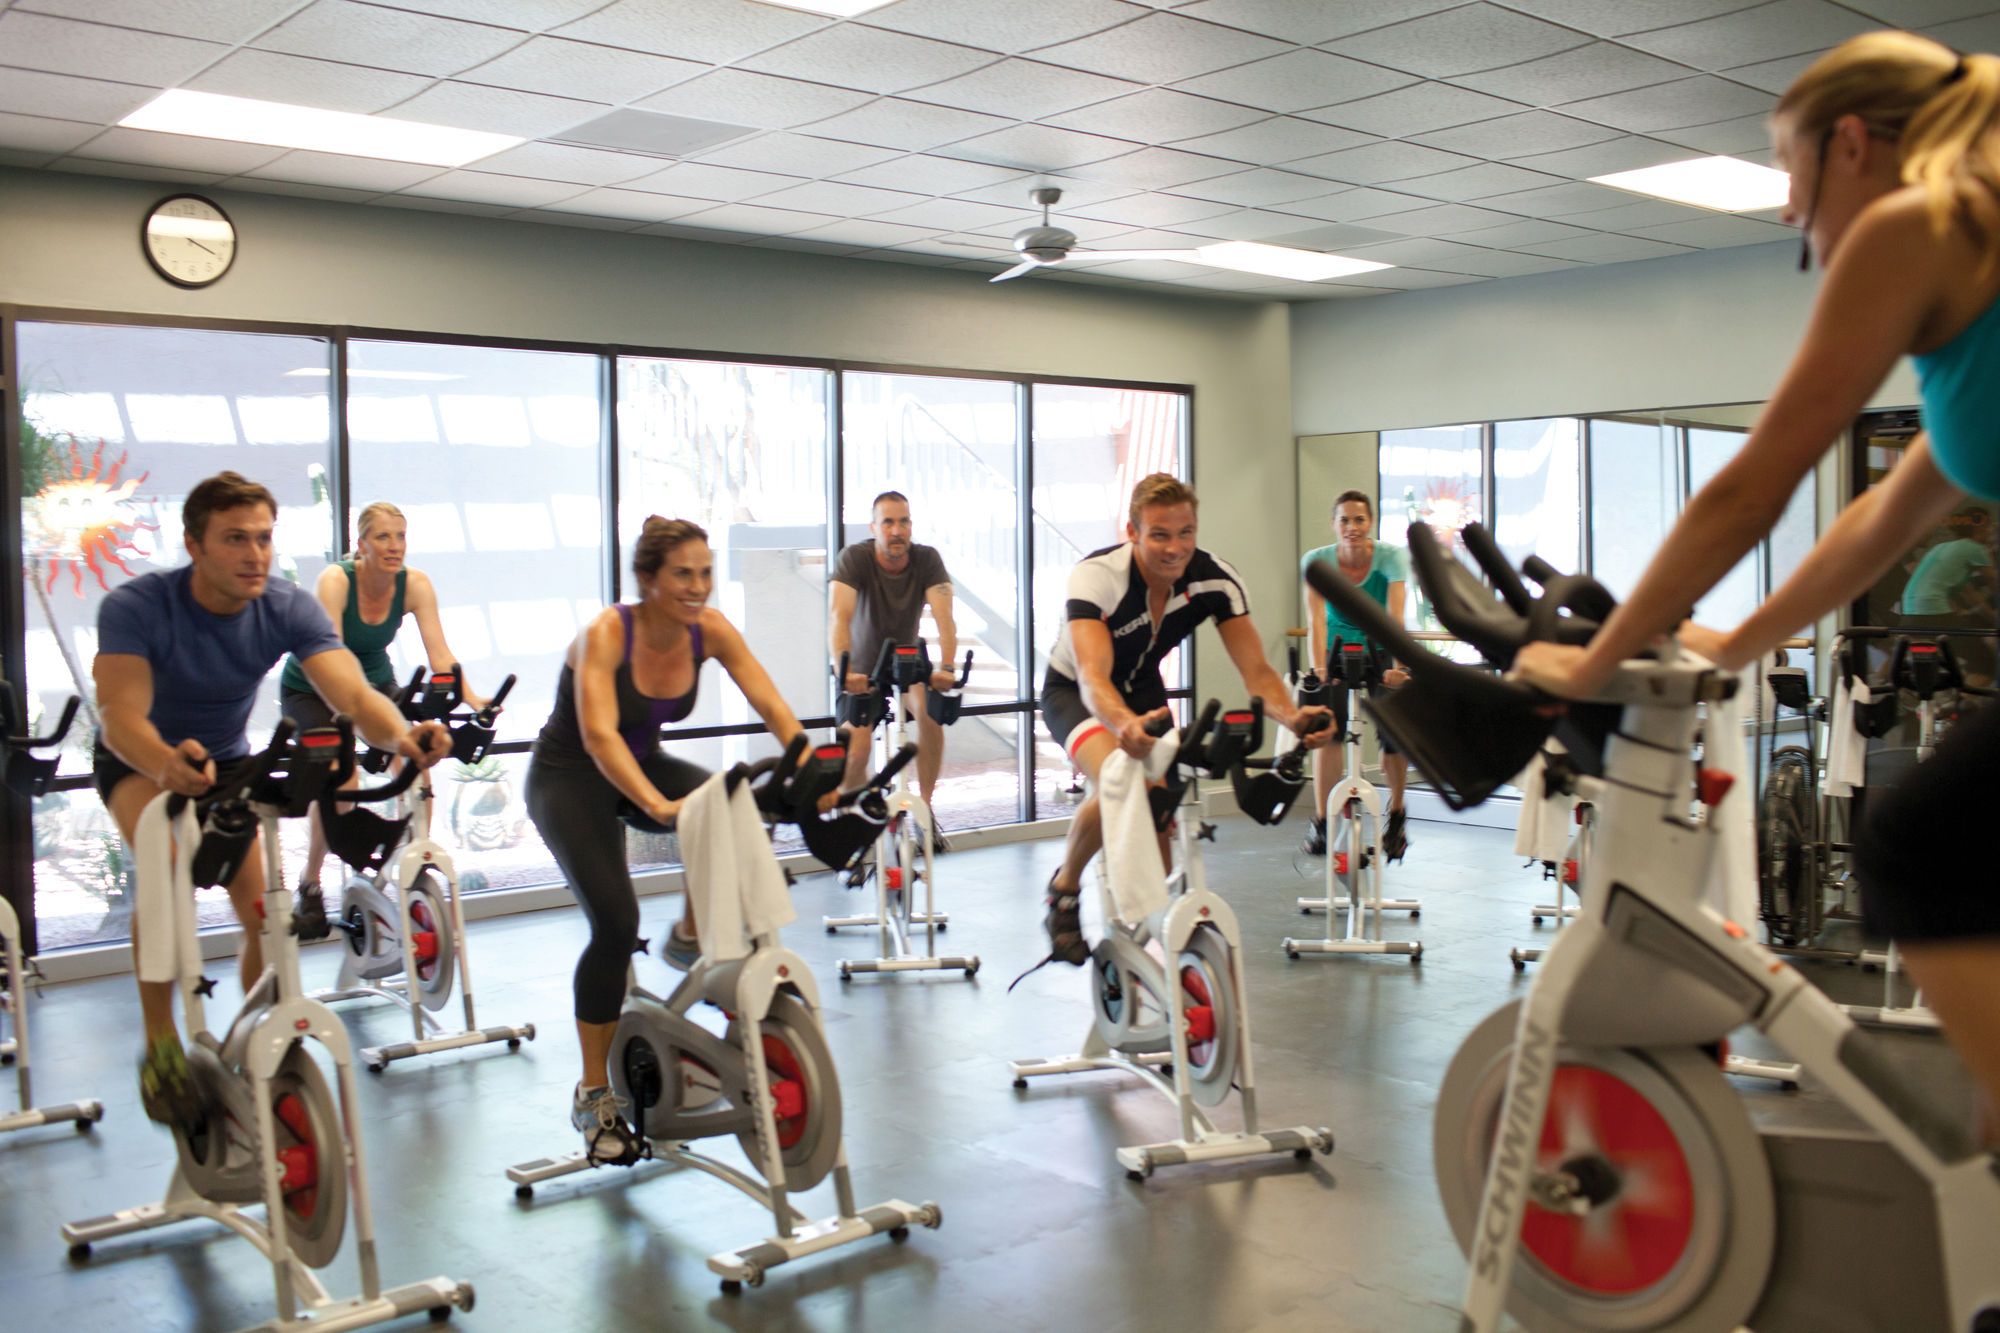 Canyon Ranch General Indoor Cycling 72dpi